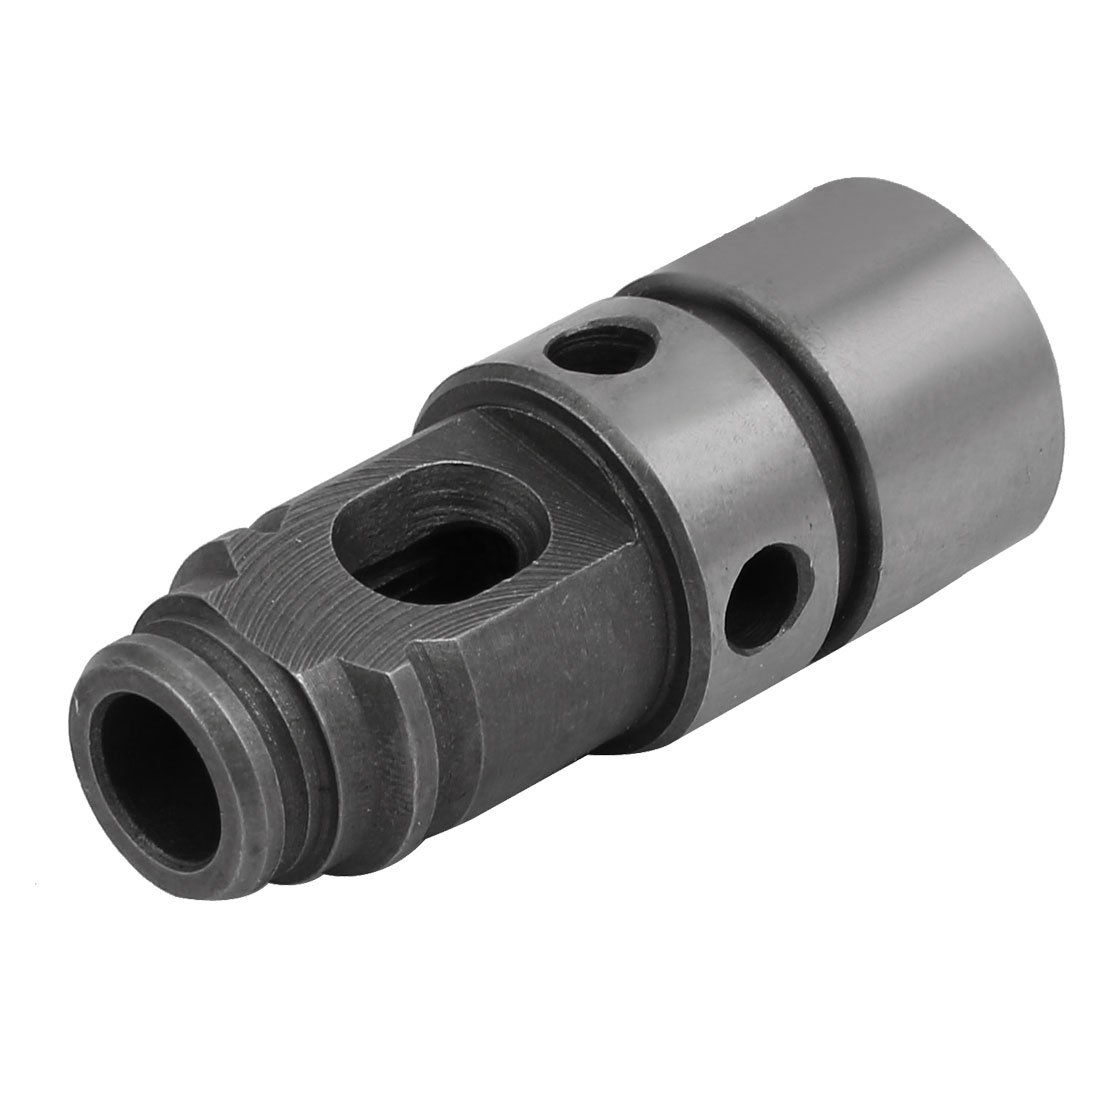 uxcell Repairing Parts Electric Drill Chuck Arbor Impact Parts for Bosch GBH2-26